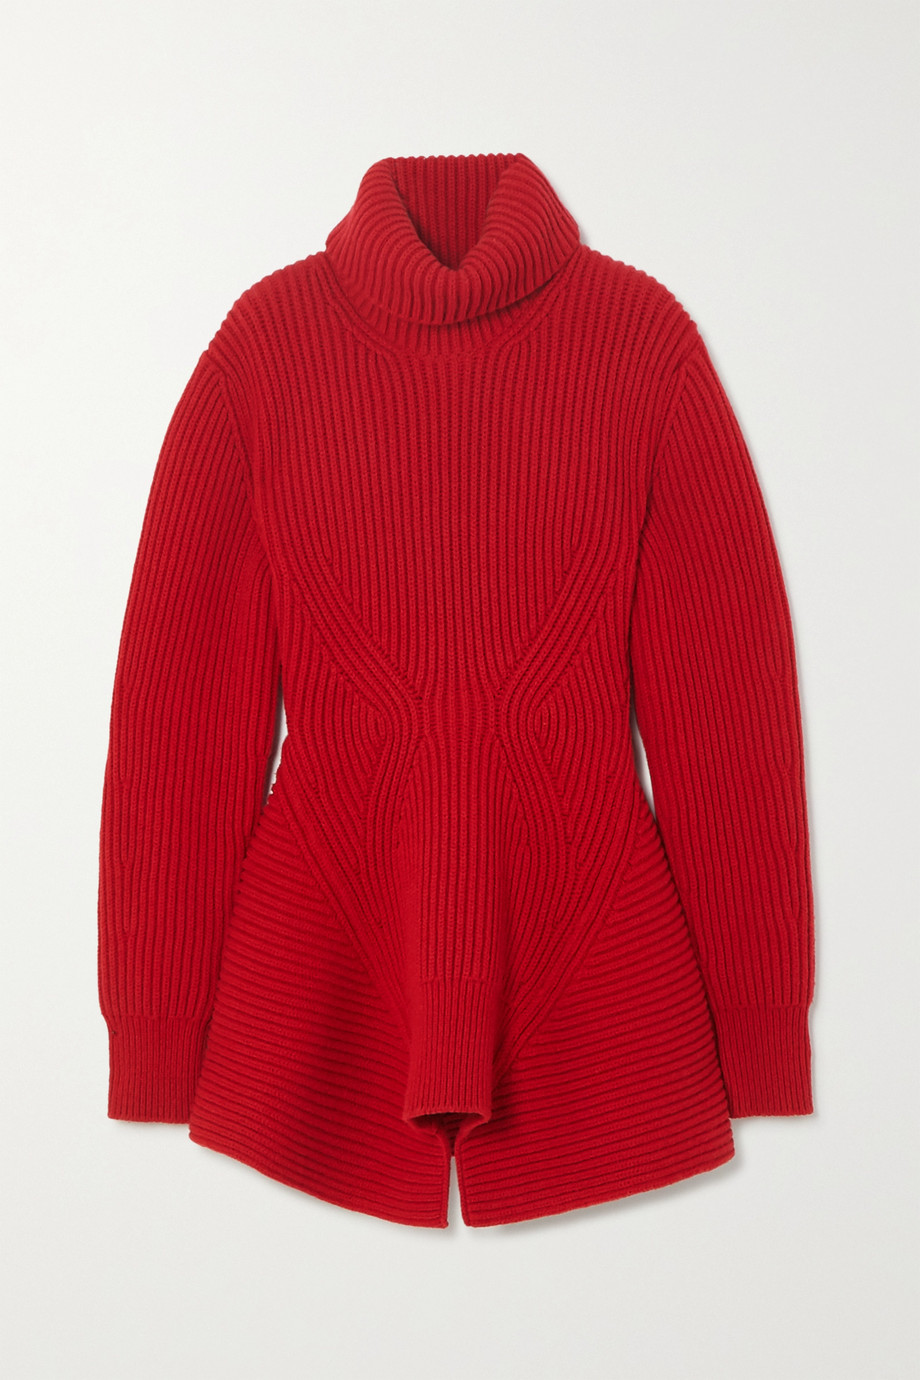 Alexander McQueen Ribbed wool and cashmere-blend turtleneck sweater